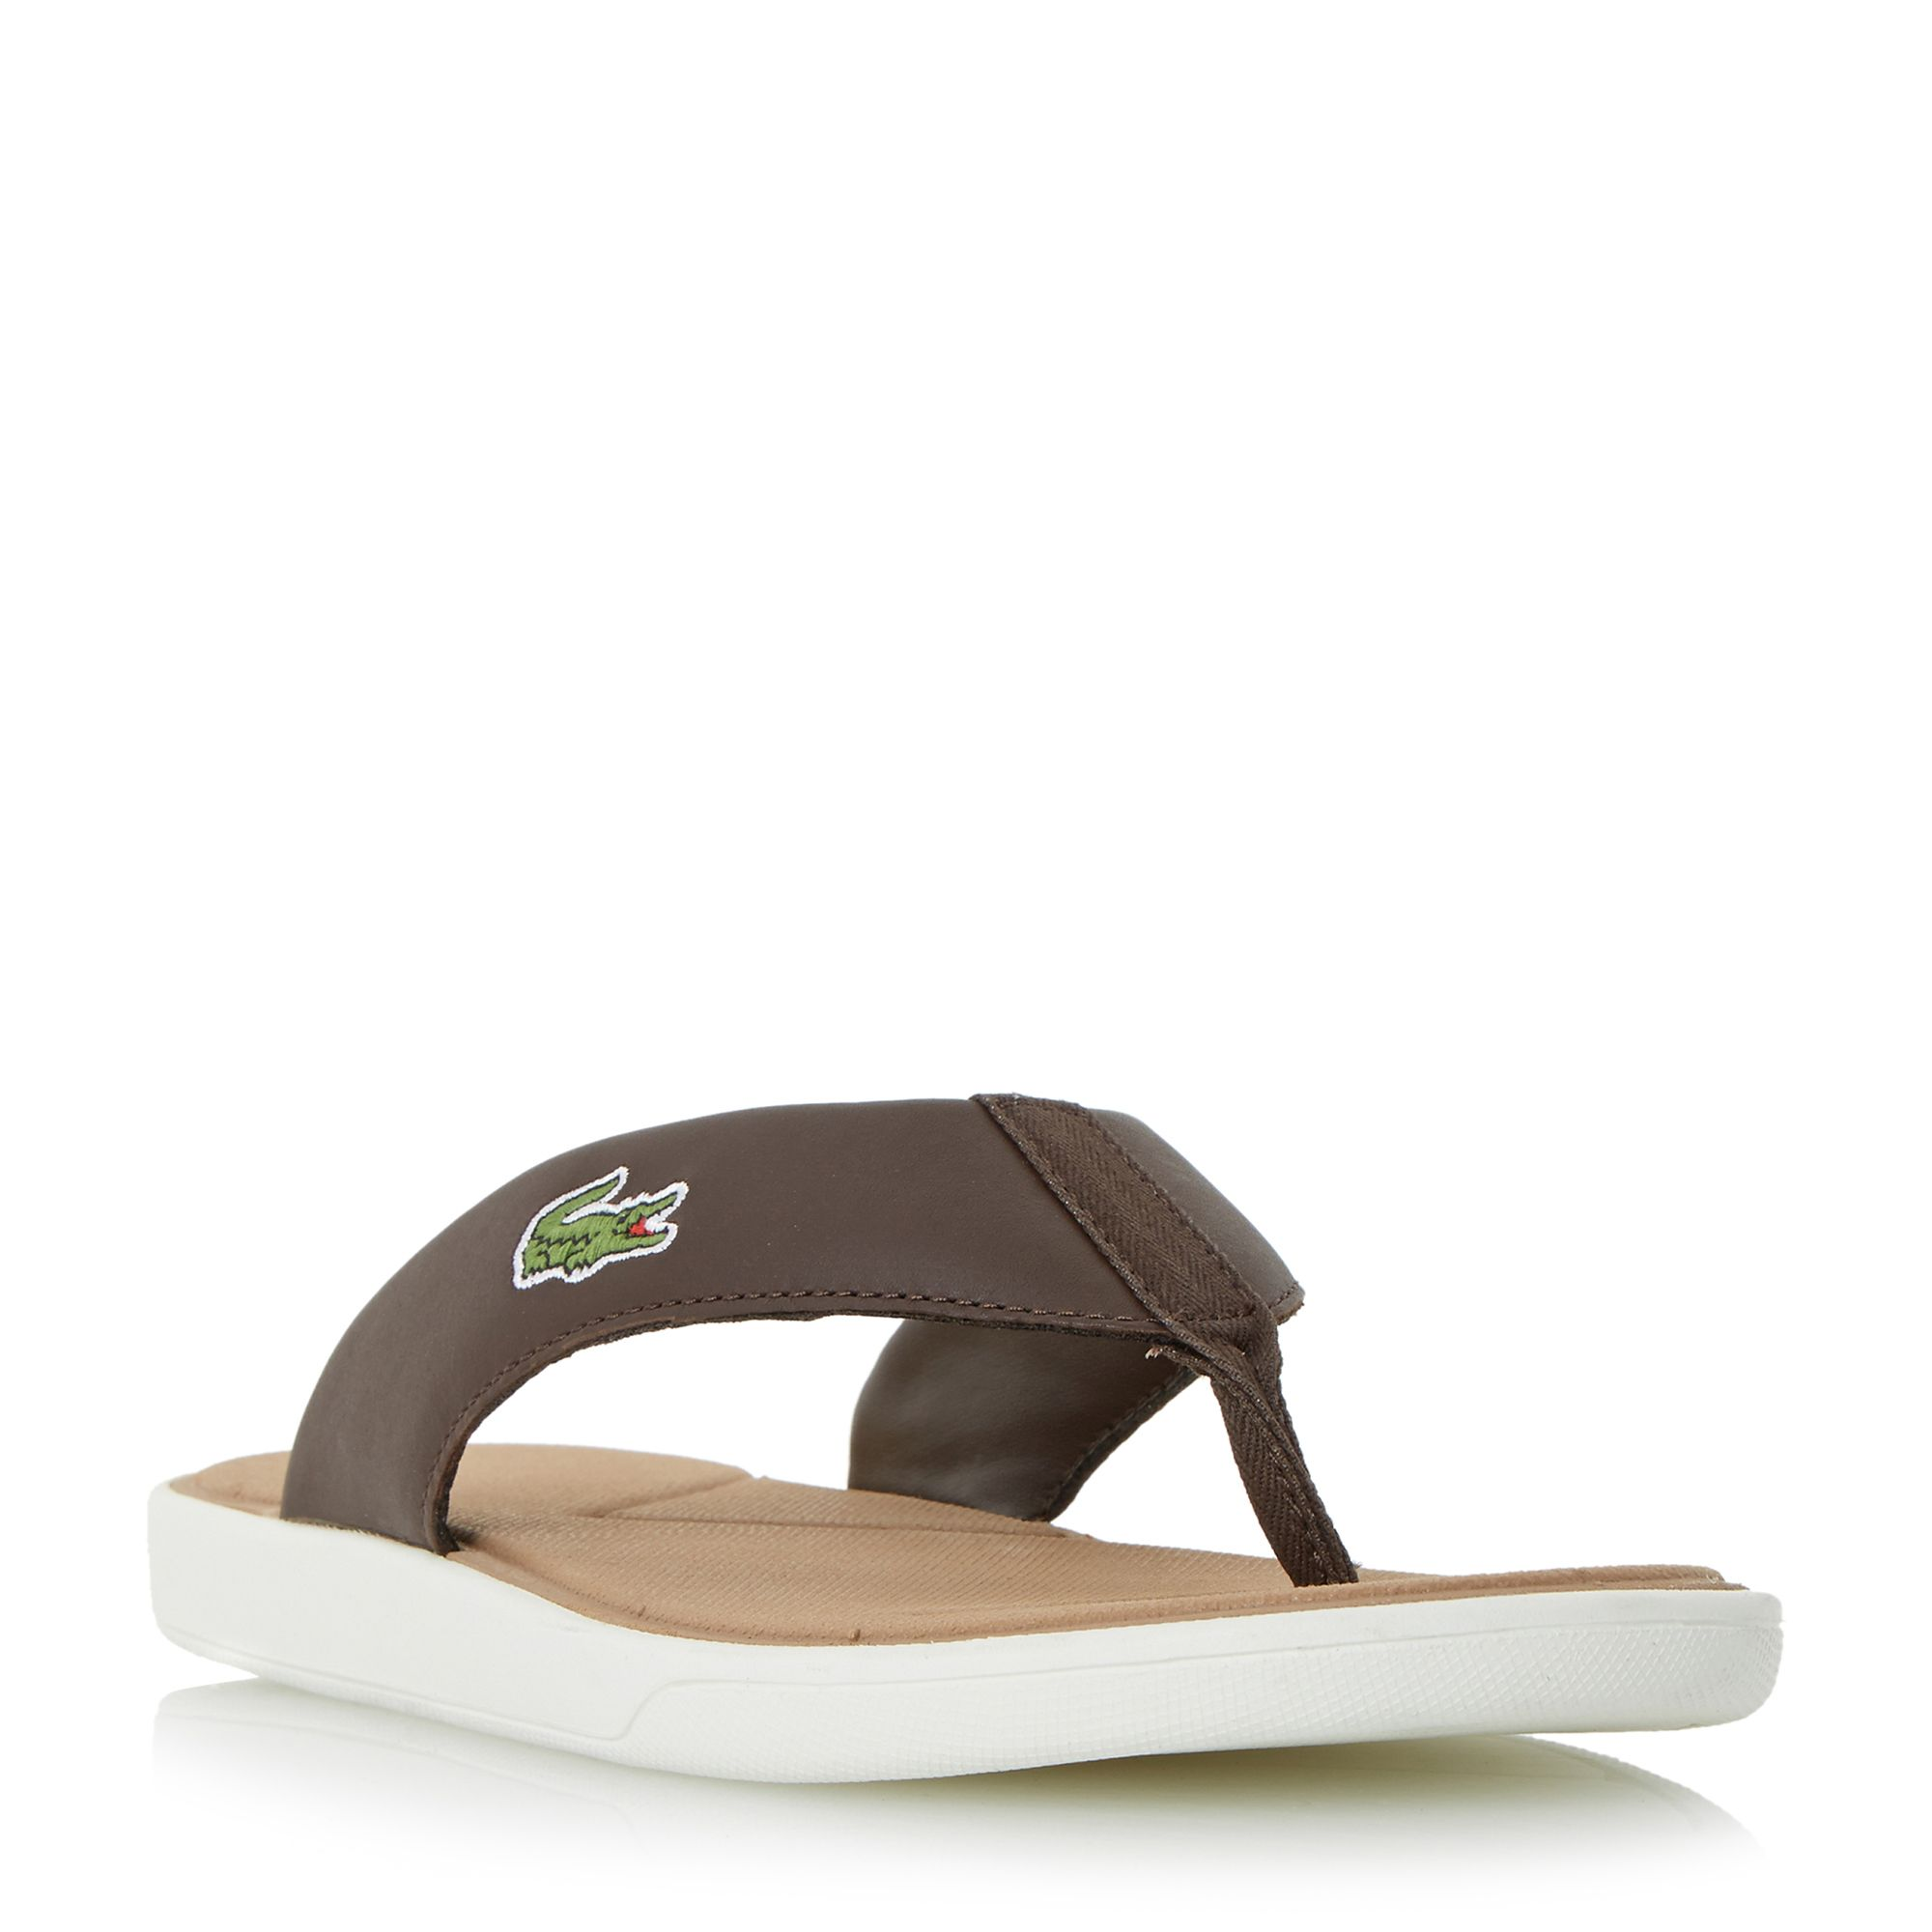 Men's Lacoste L.30 Leather Toe Post Flip Flops, Dark Brown